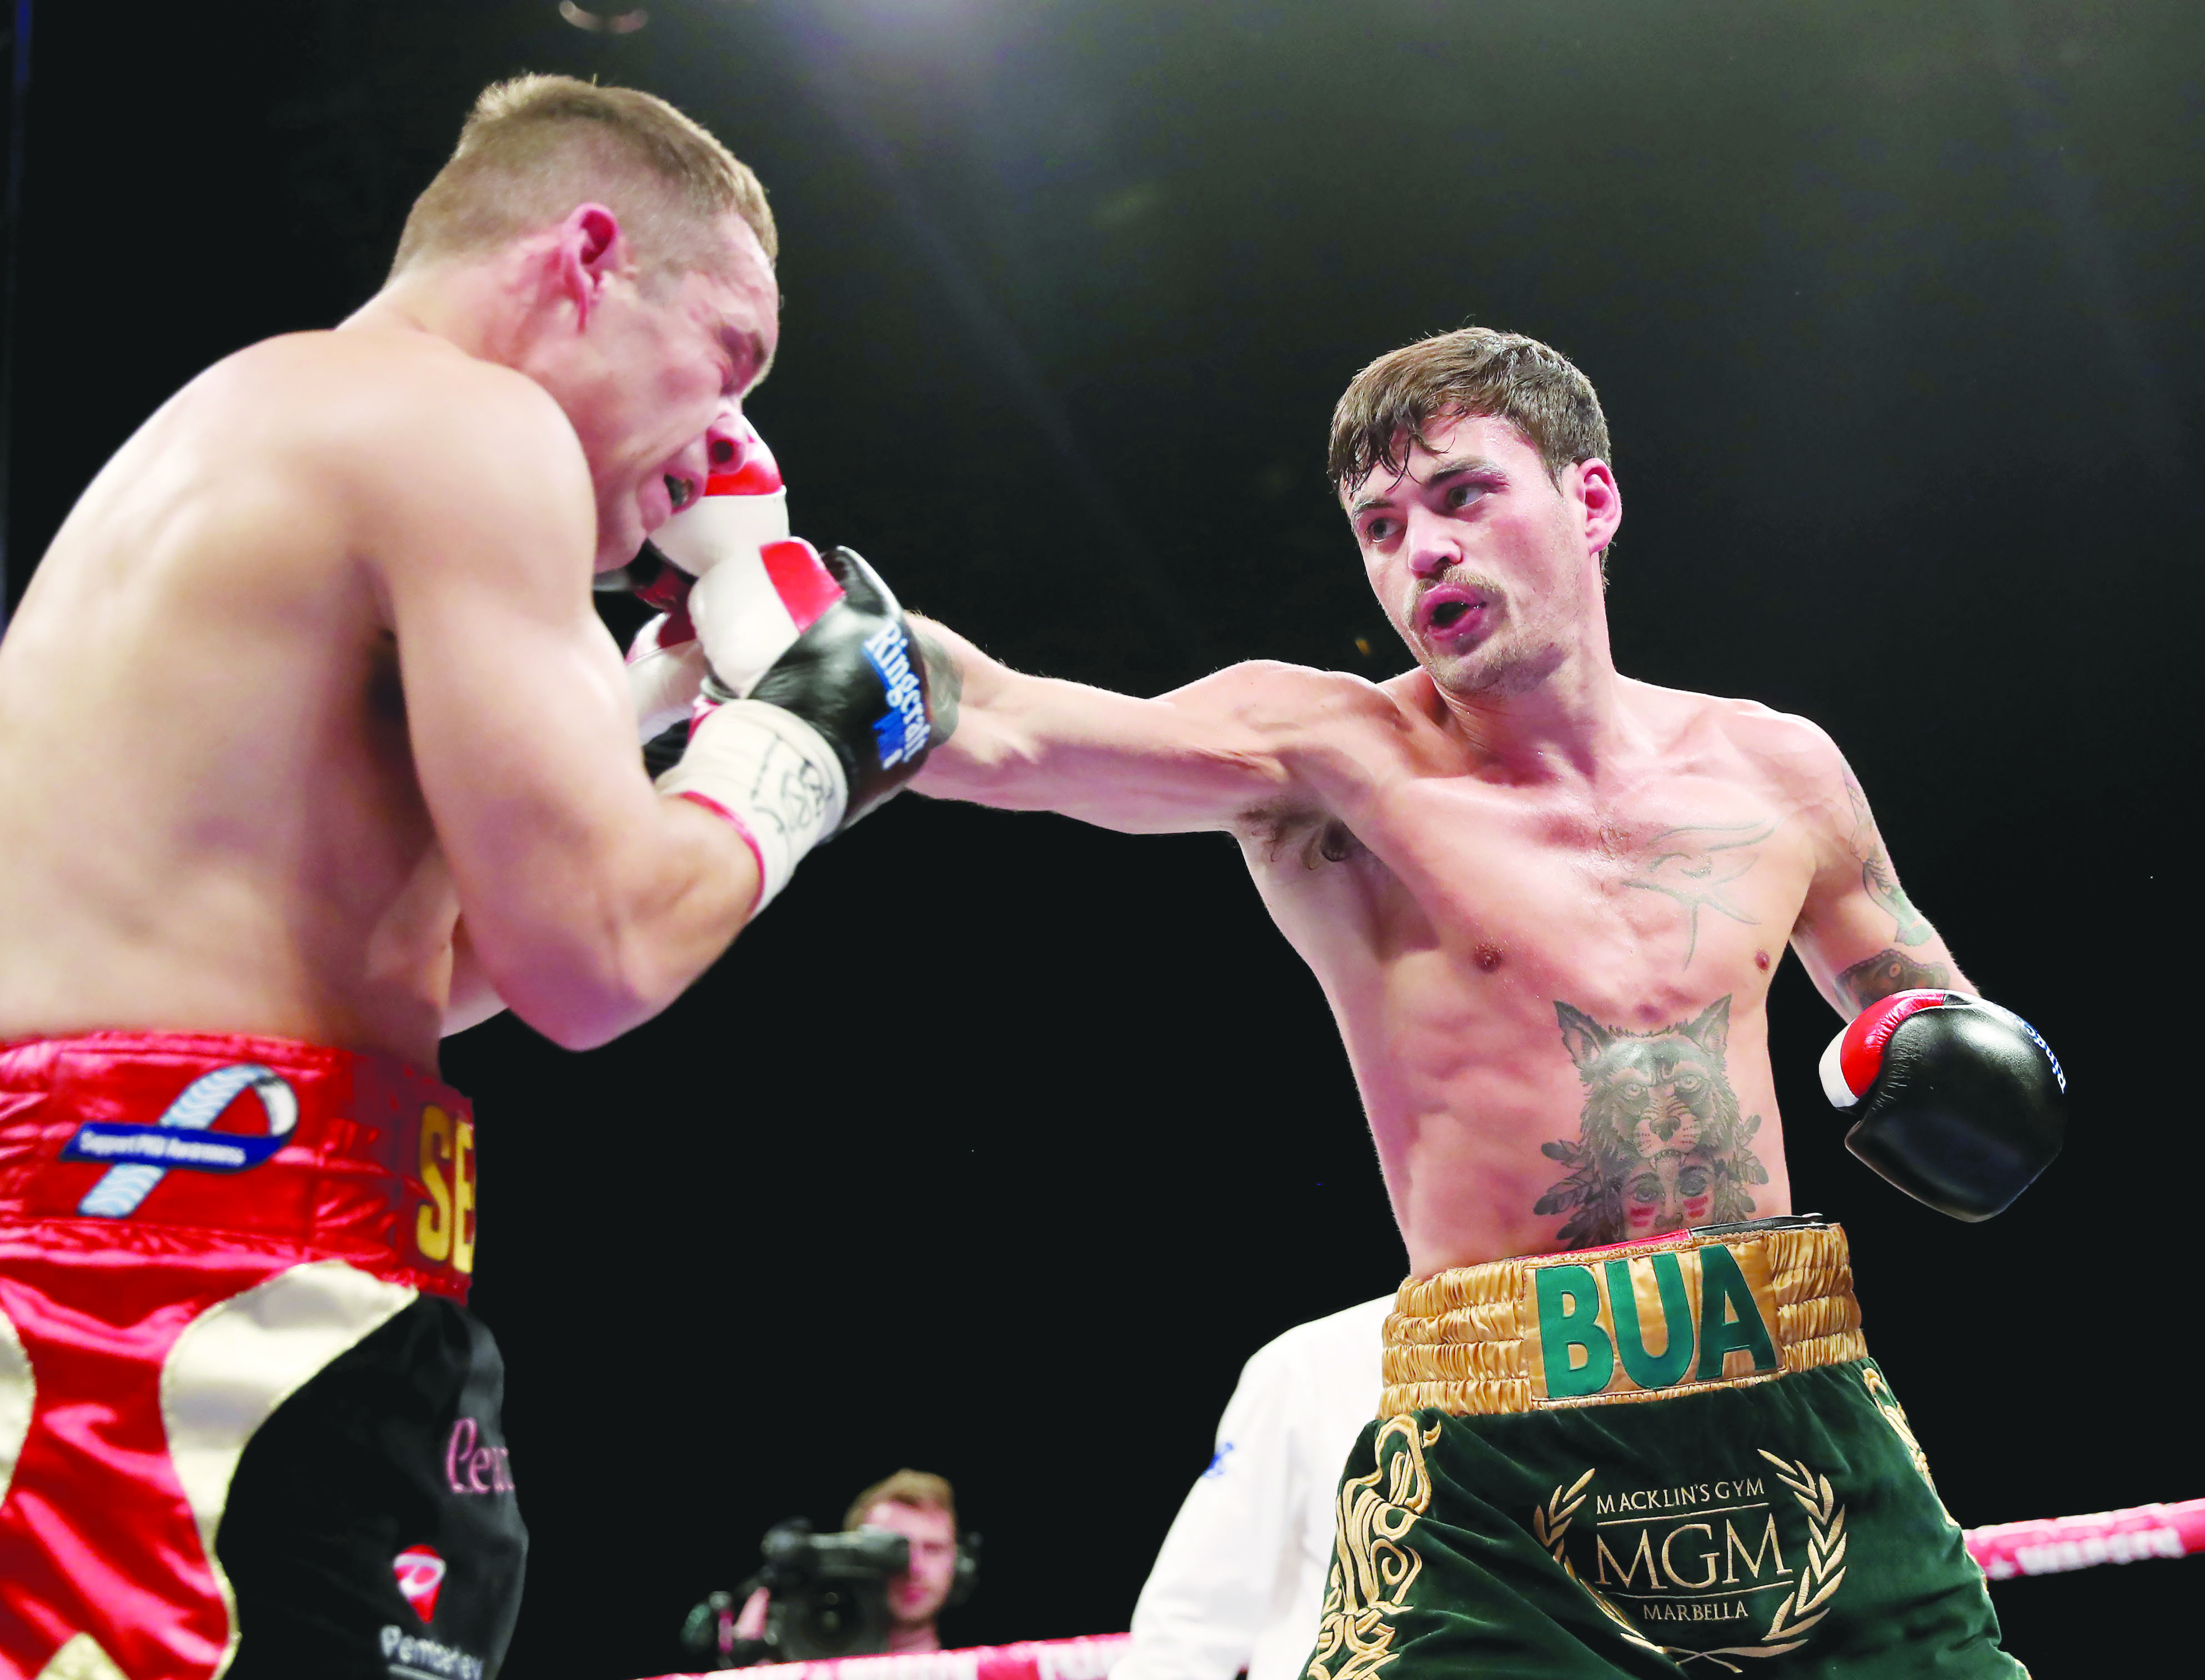 Tyrone McKenna (right), pictured in action against Sean Creagh at the Titanic Exhibition Centre last November returns to action on Friday night when he takes on undefeated Dubliner Jake Hanney at Belfast's Waterfront Hall